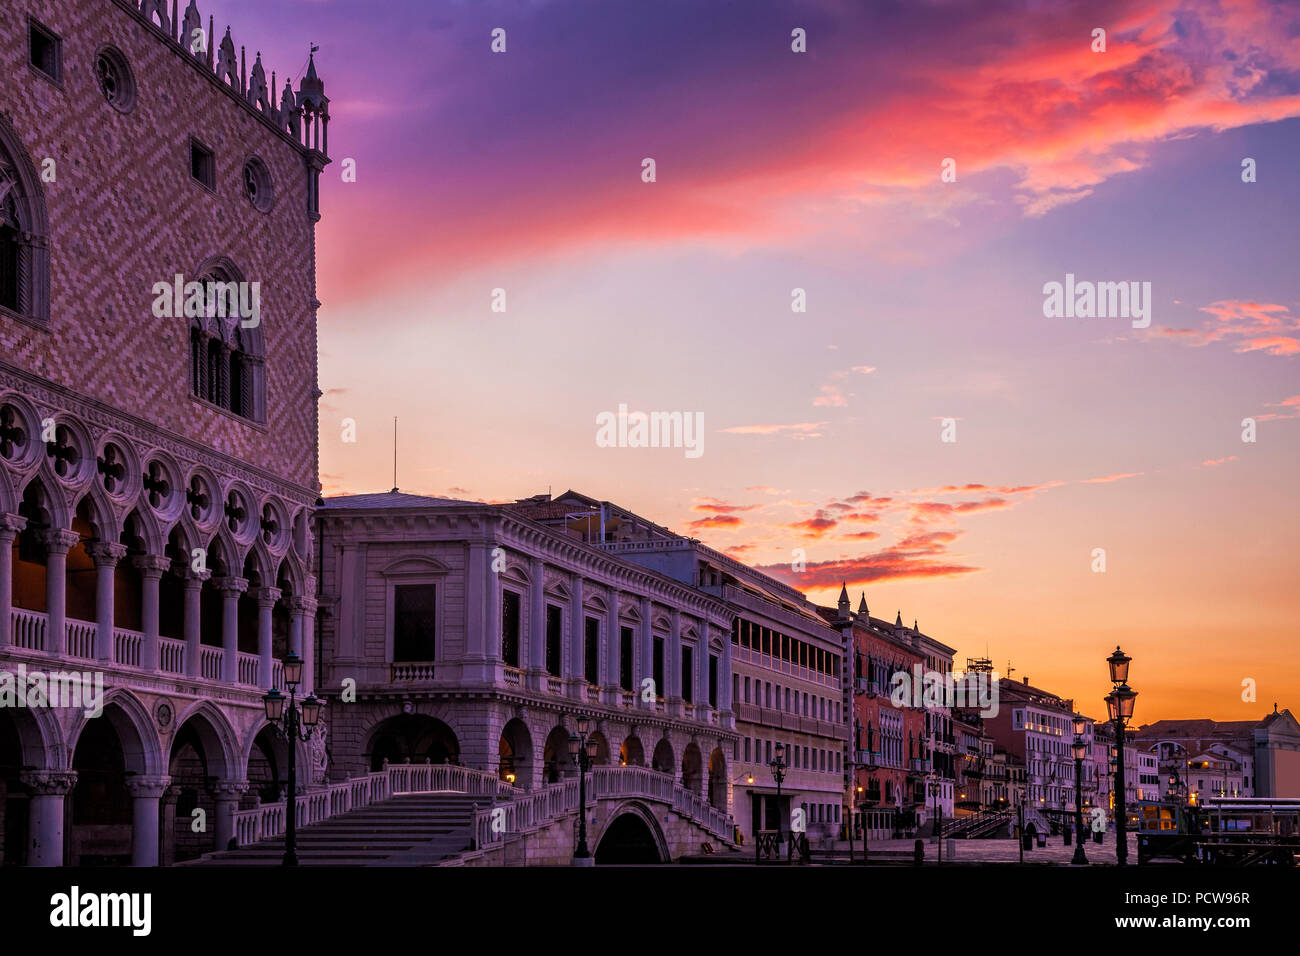 Venice's Doges Palace under vibrant clouds at sunset - Stock Image